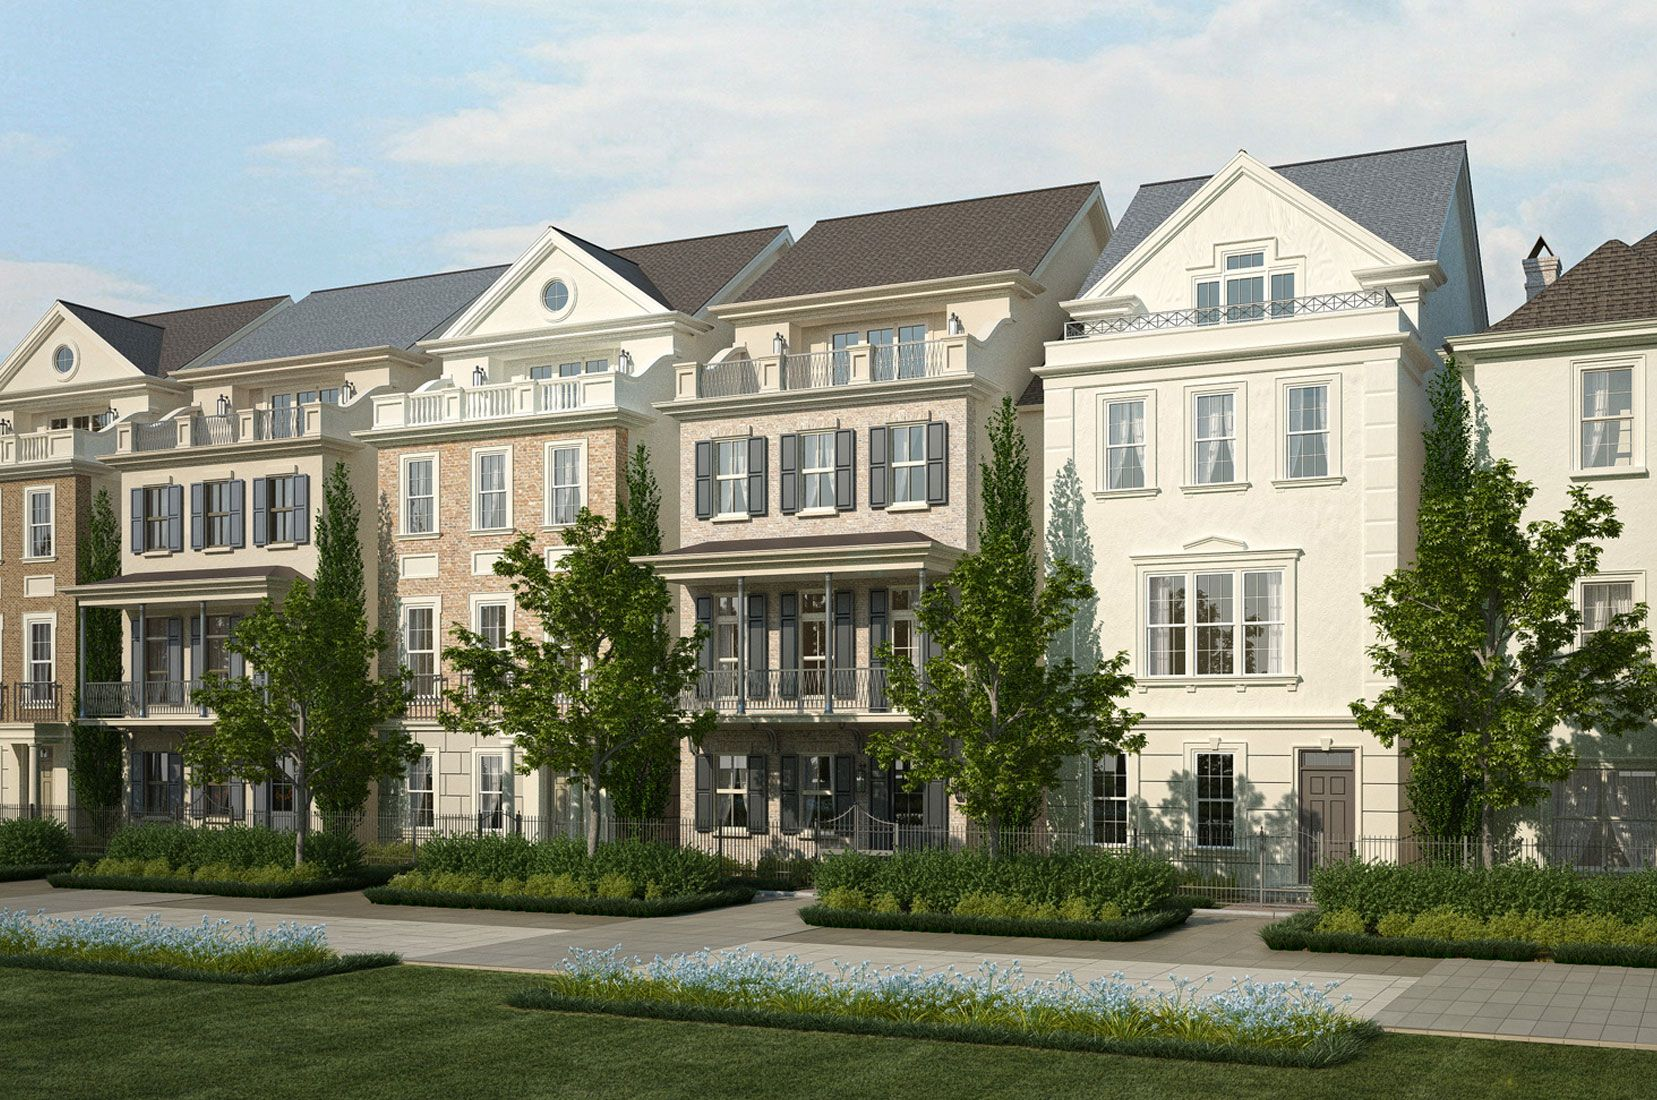 37 Townhome Floor Plans And Elevations Ideas Floor Plans Townhouse How To Plan